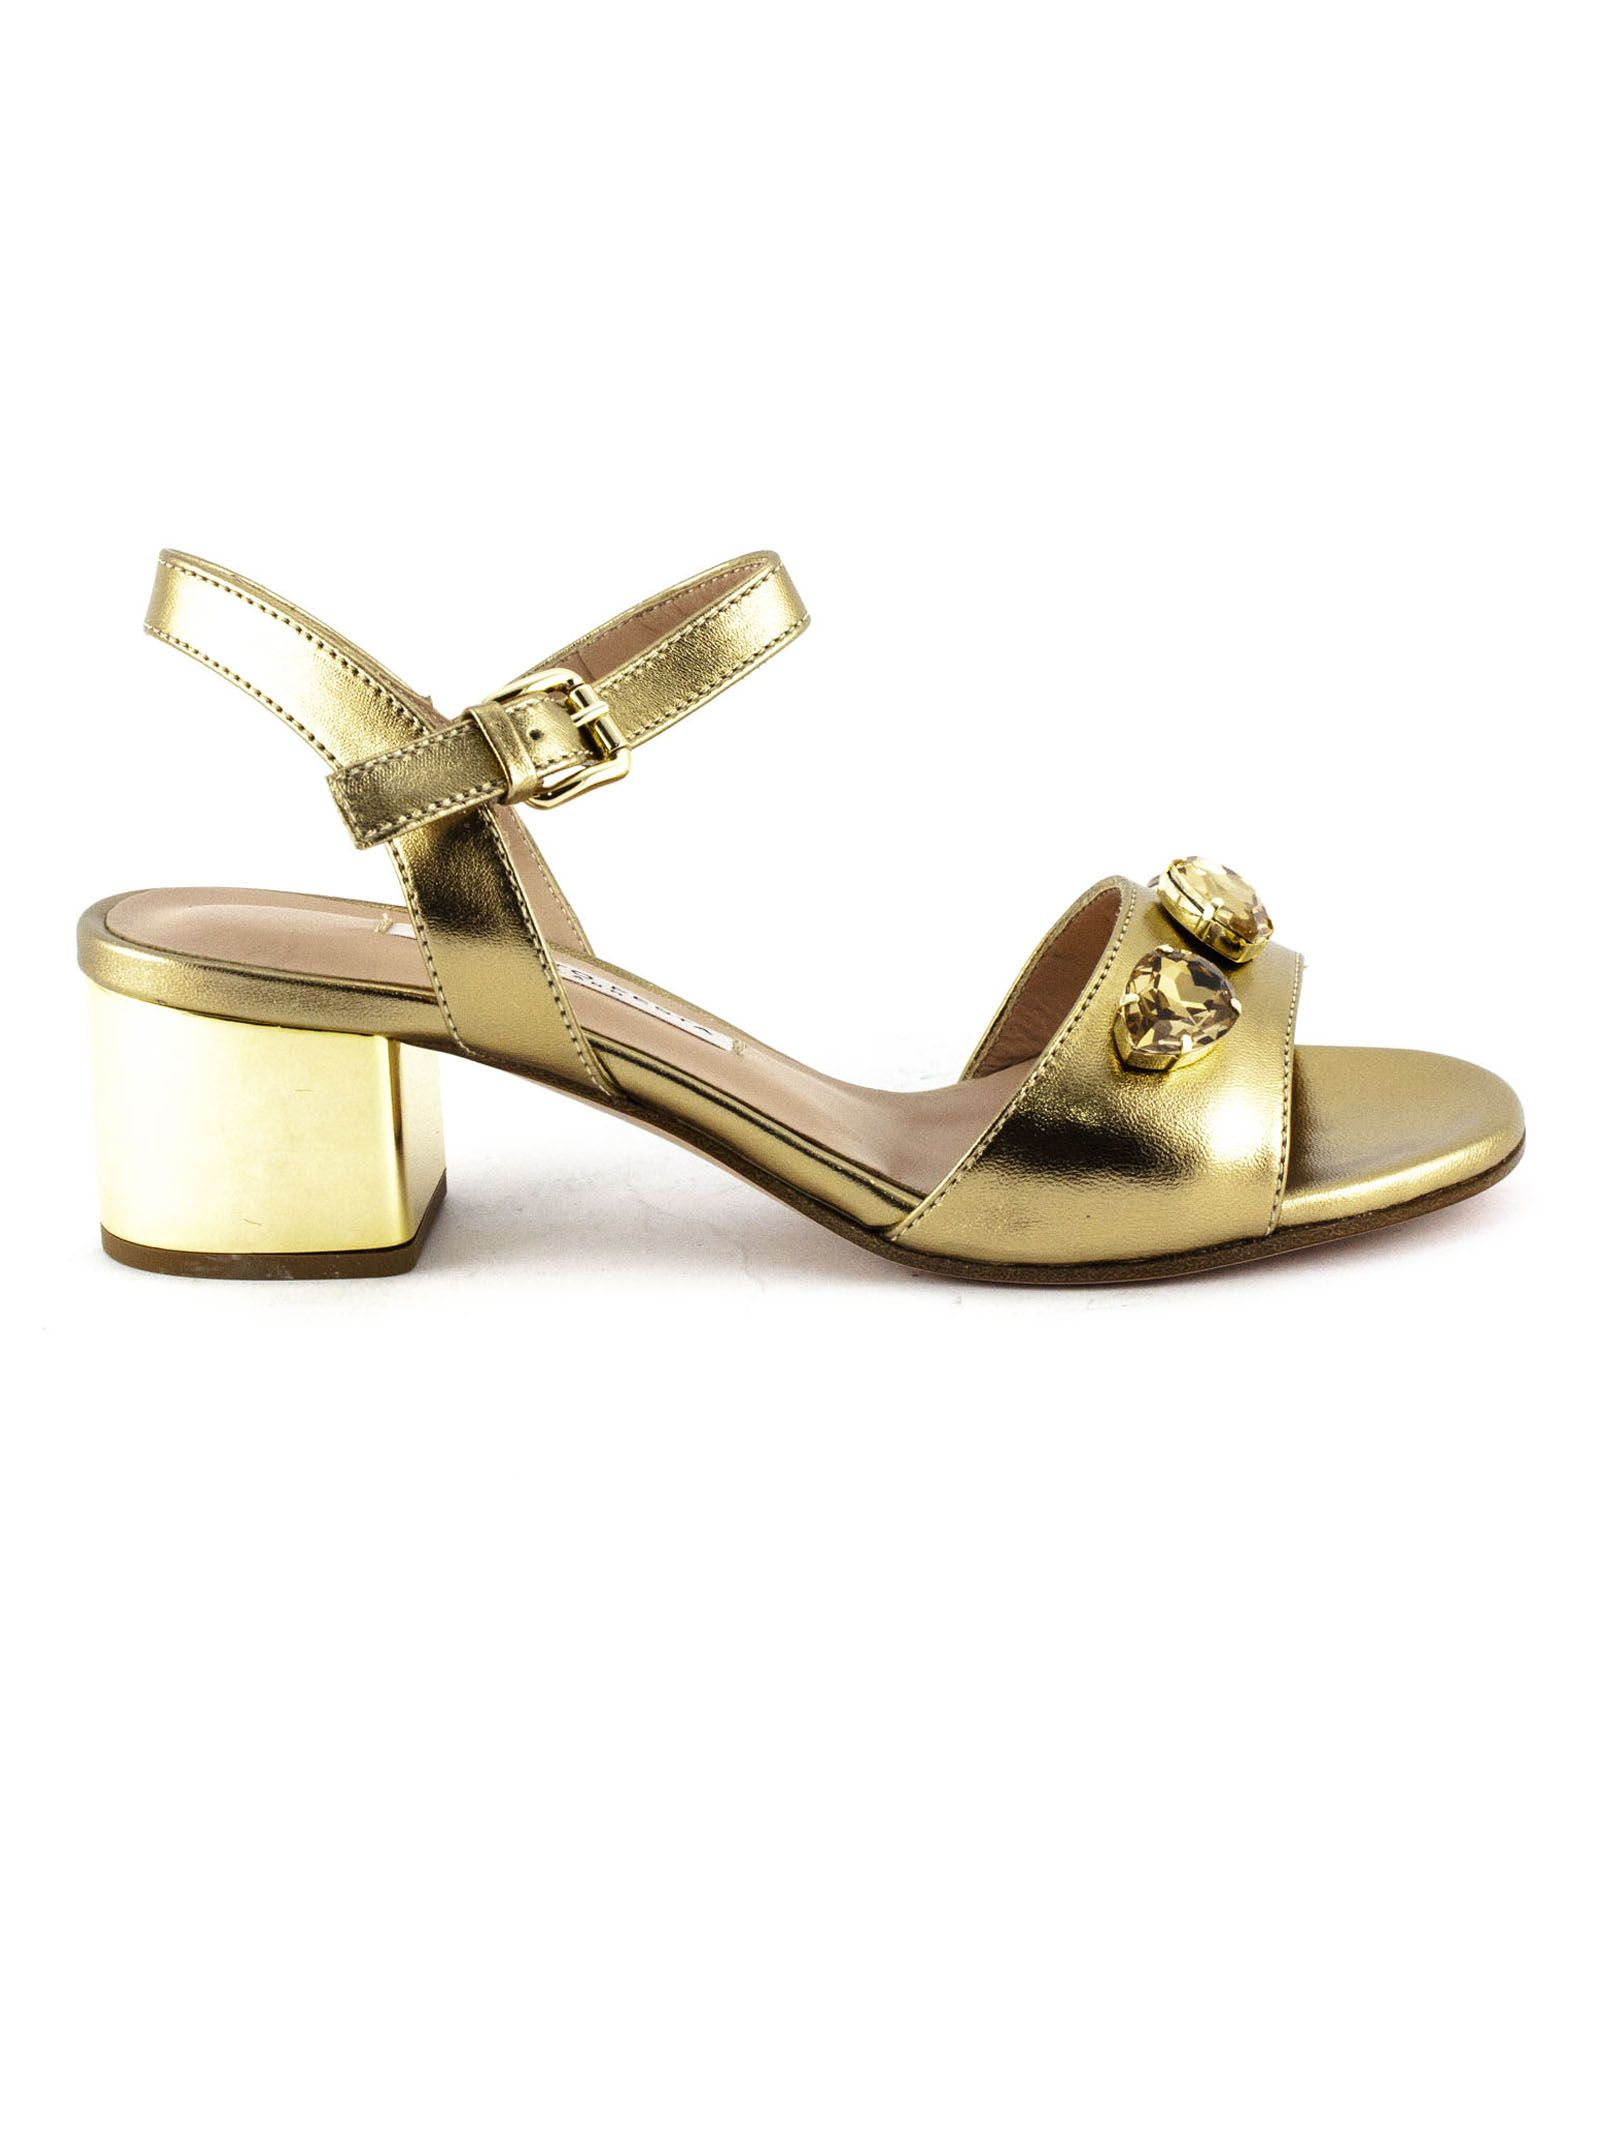 Roberto Festa Ciclamino Sandal In Mirrored Gold Leather